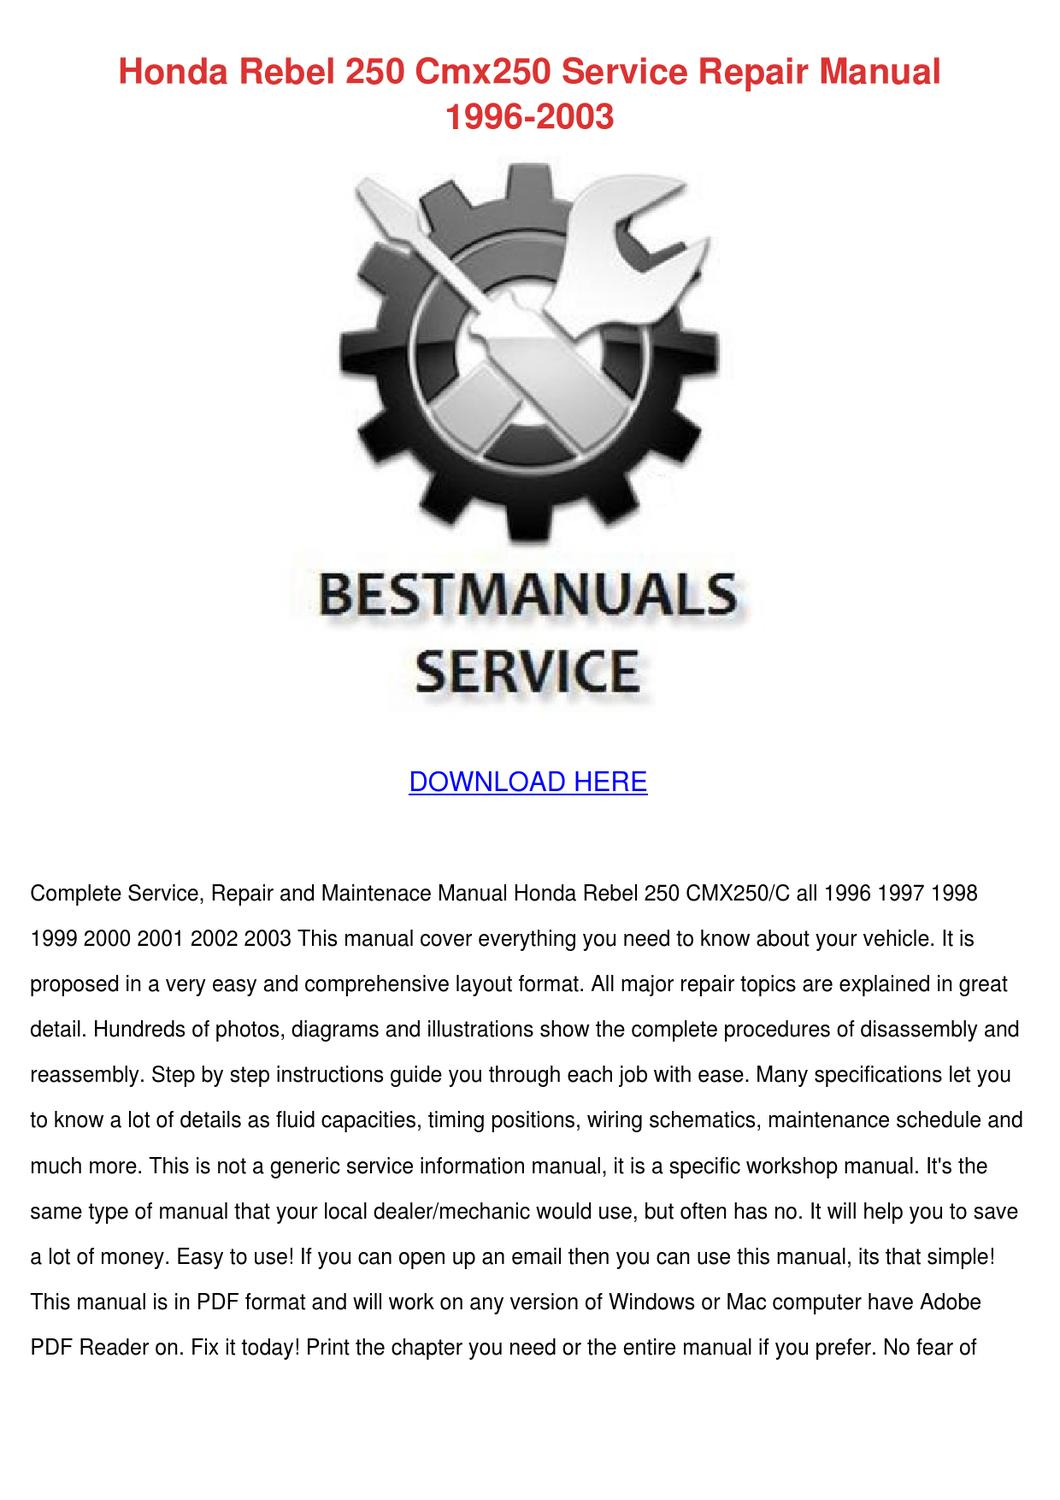 honda rebel 250 cmx250 service repair manual by alise neveu issuu